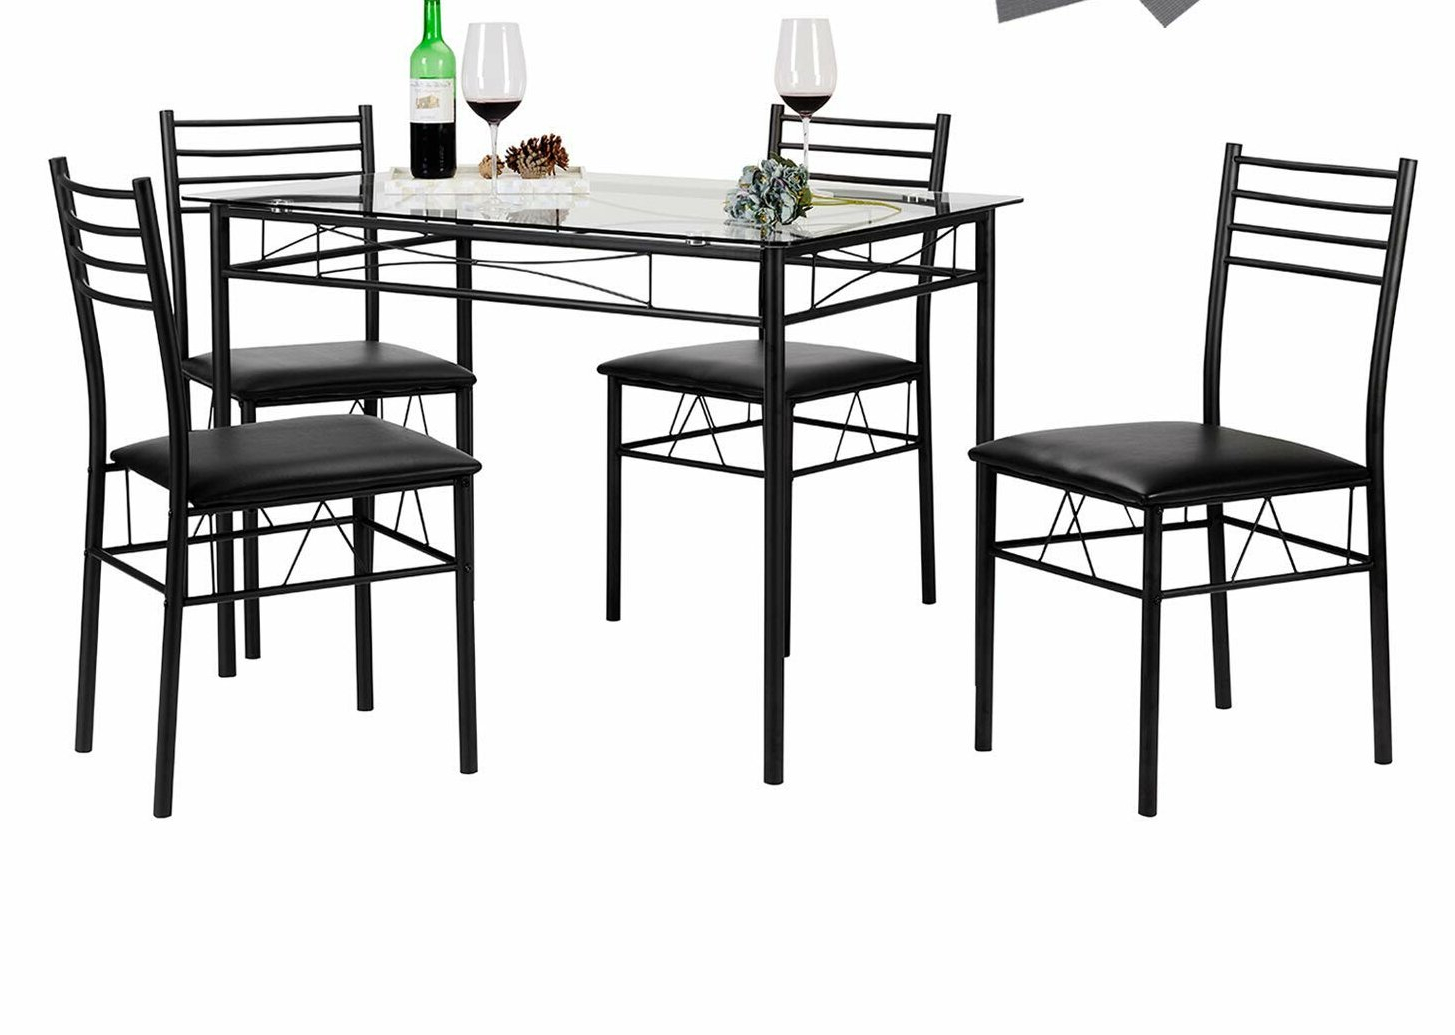 Taulbee 5 Piece Dining Sets Within Well Known Ebern Designs Lightle 5 Piece Breakfast Nook Dining Set & Reviews (View 12 of 25)